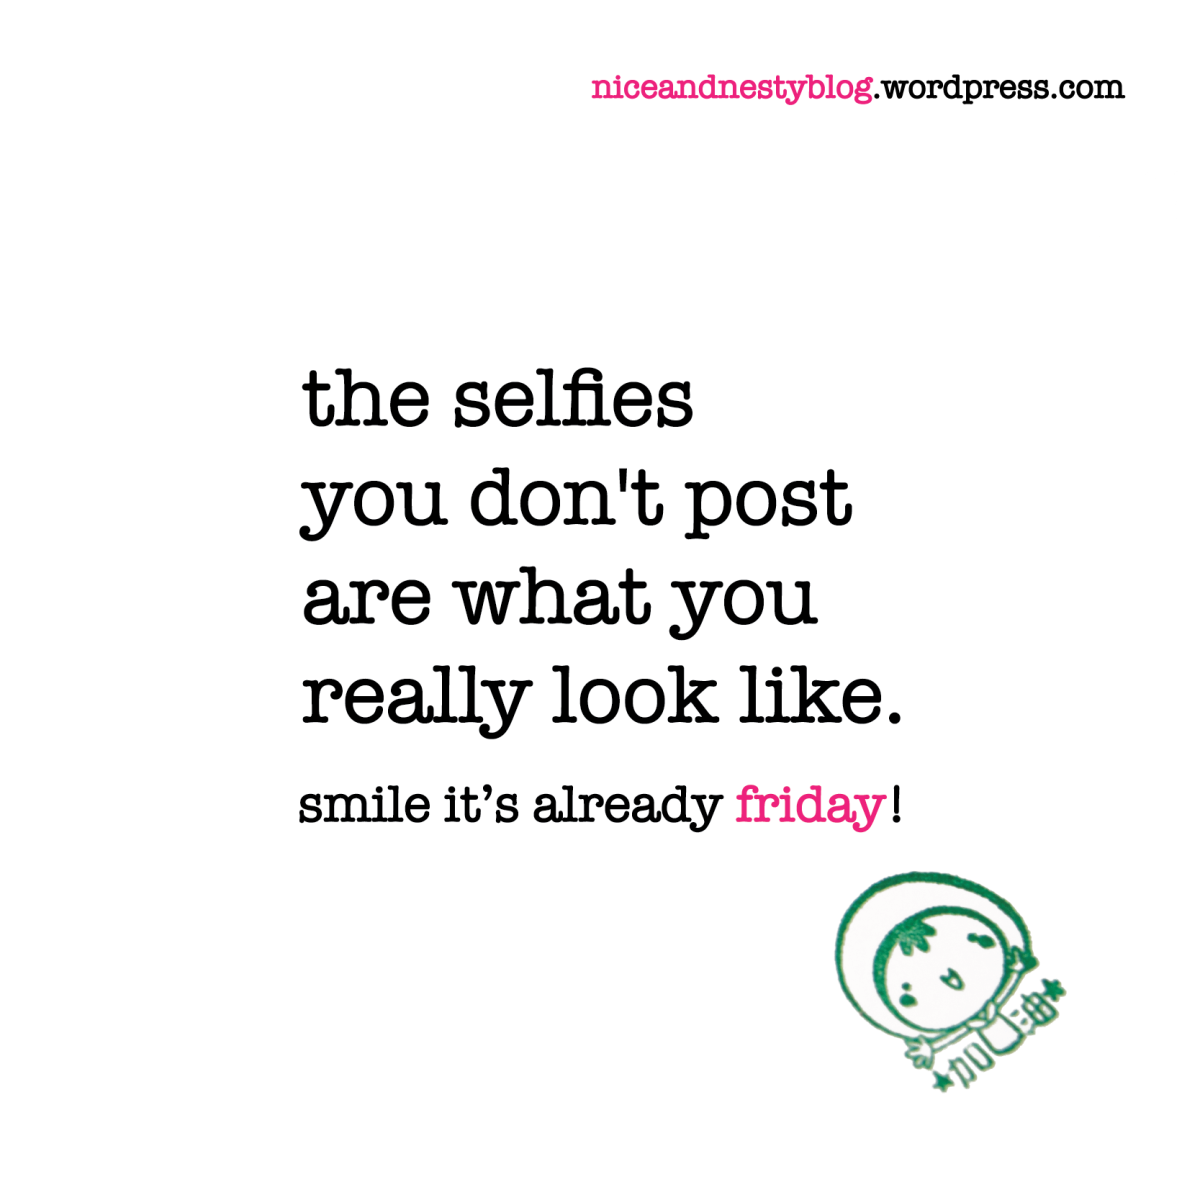 Good Quotes For Smiling Selfies: The Selfies You Don't Post Are What You Really Look Like